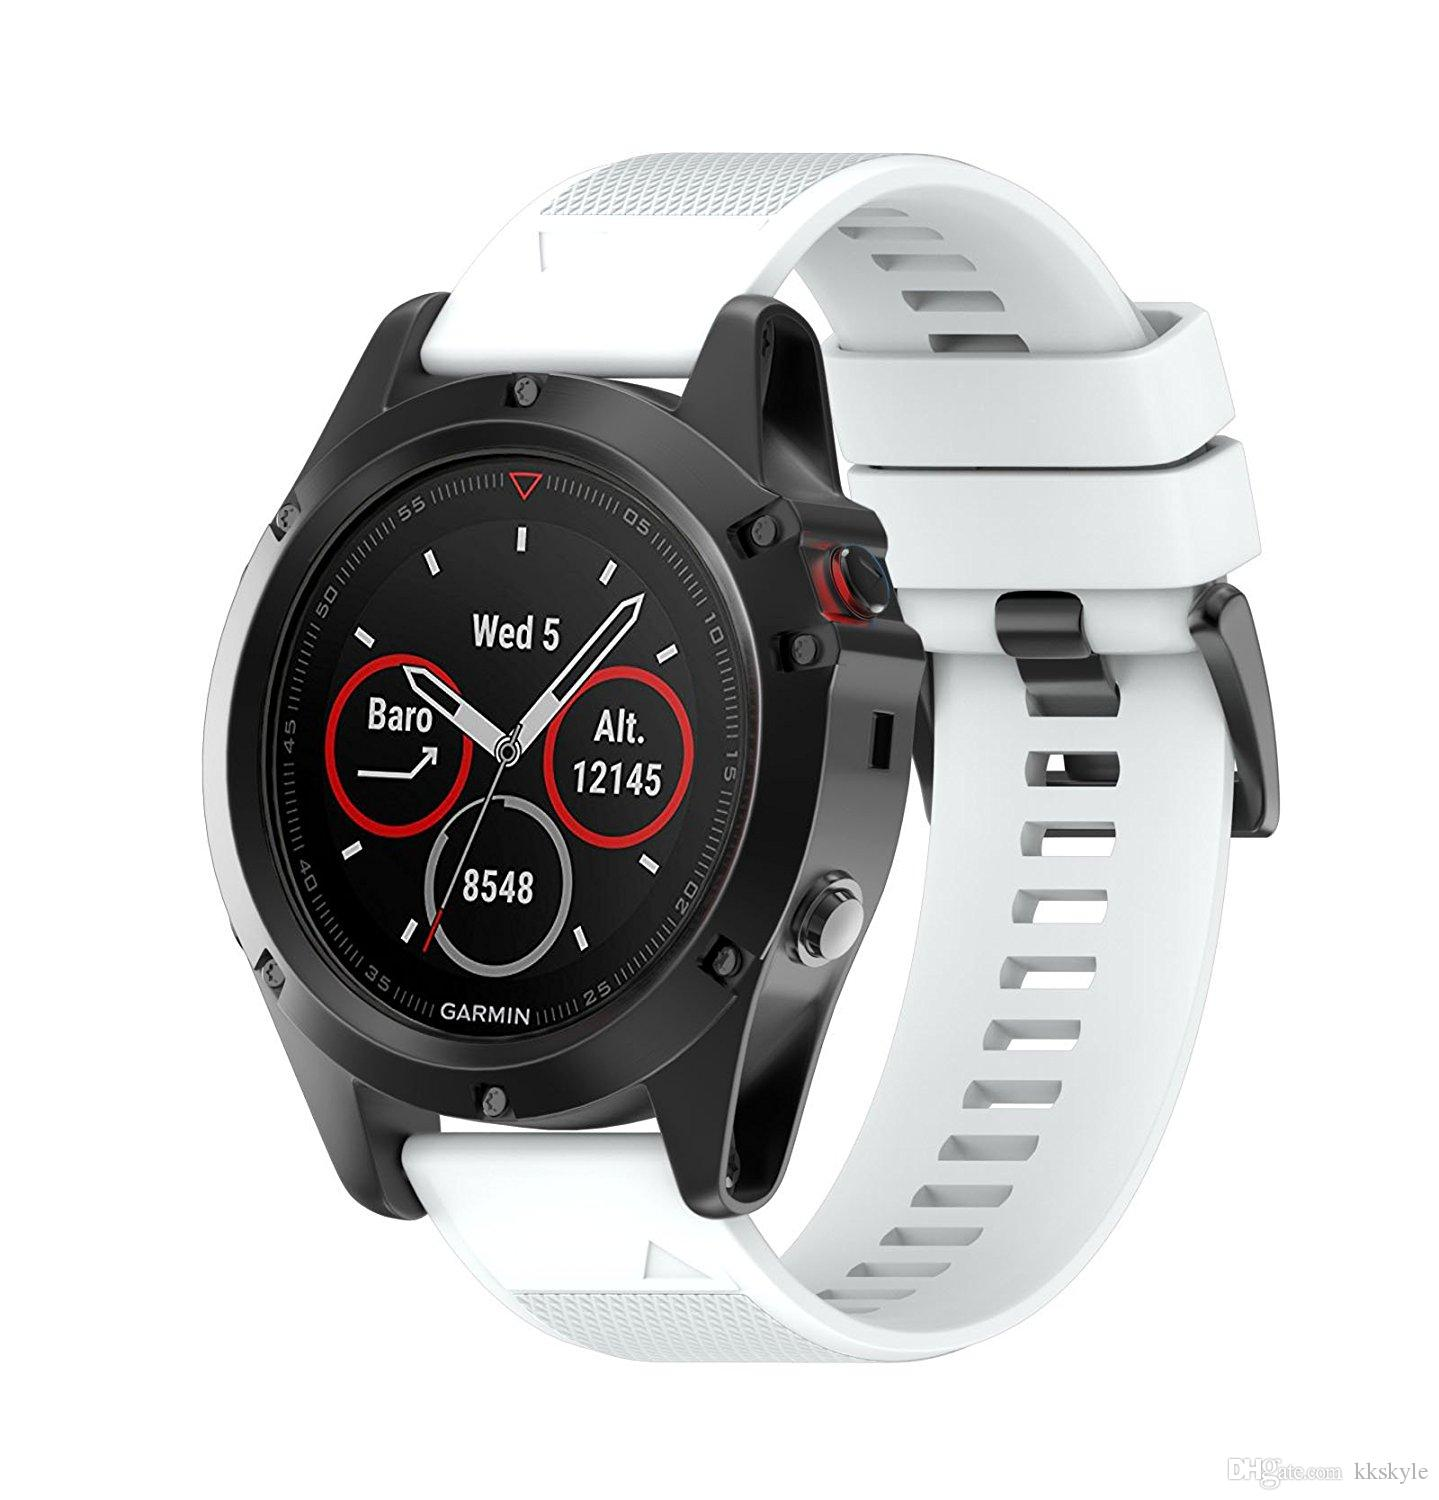 Garmin Fenix 5X Bands,Quick Install Band Silicone Replacement Accessories Straps for Fenix 5S GPS Smart Watch No Garmin Watch Included